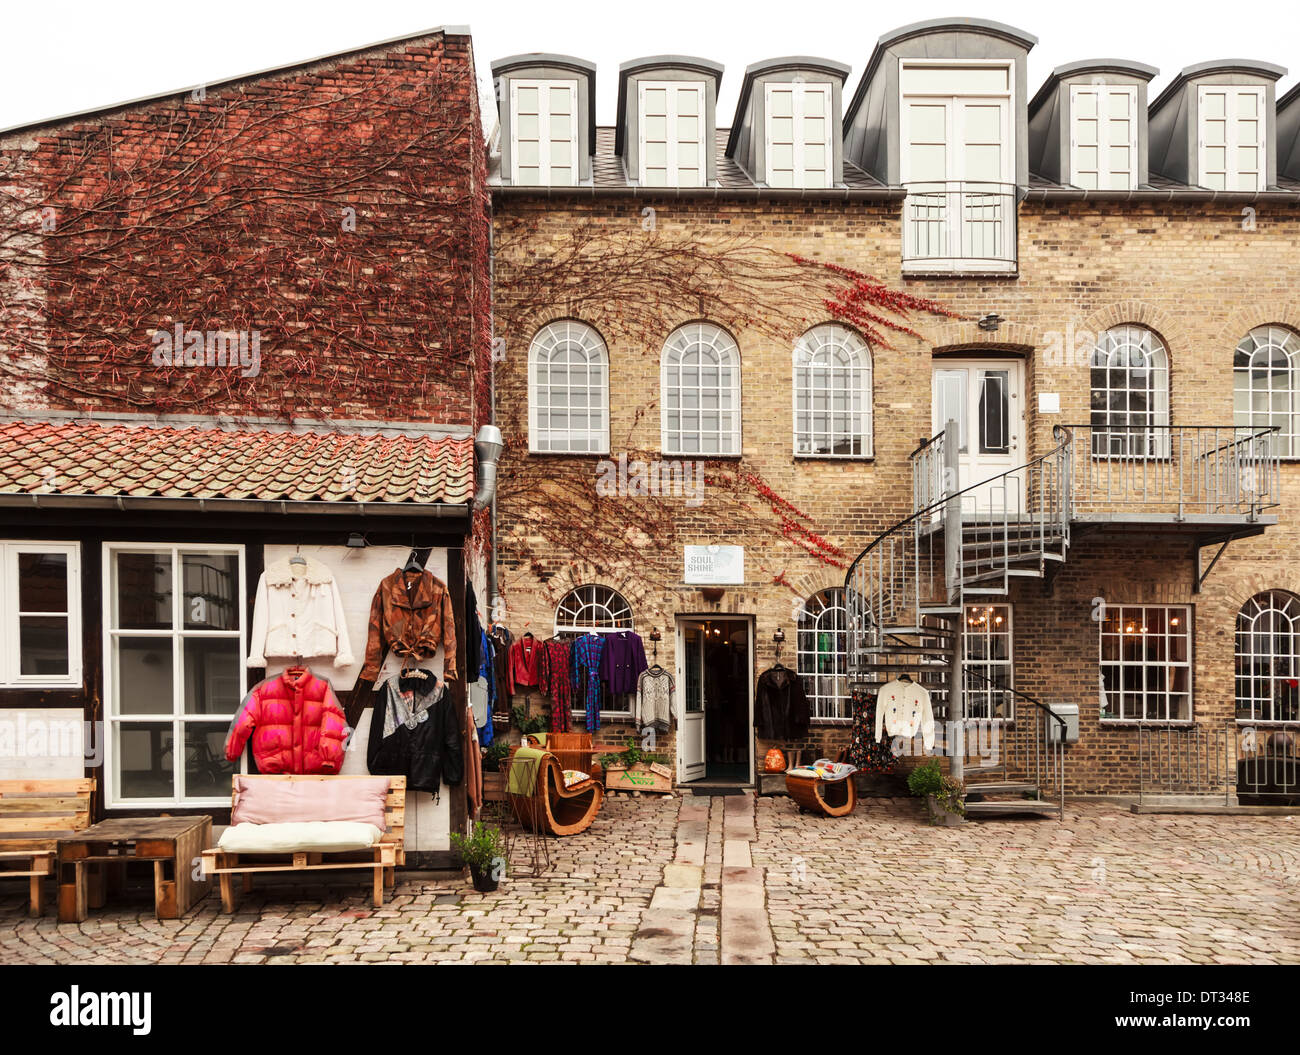 An eccentric vintage clothing shop in the Danish city of Aarhus - Stock Image